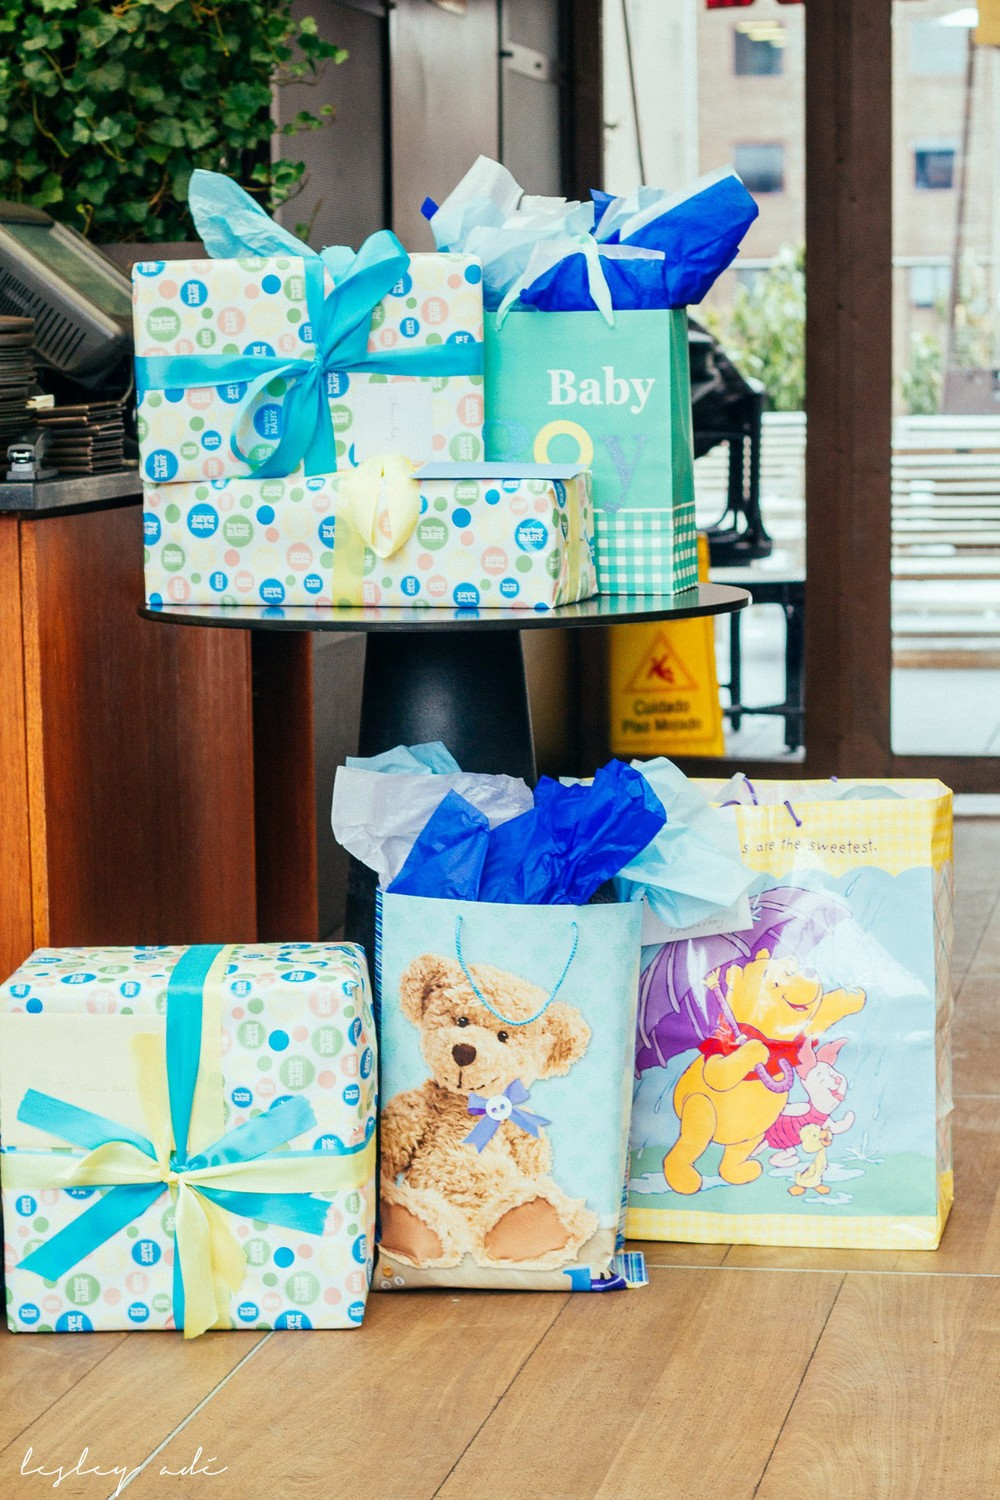 manhattan baby shower_lesleyade photography-4.jpg